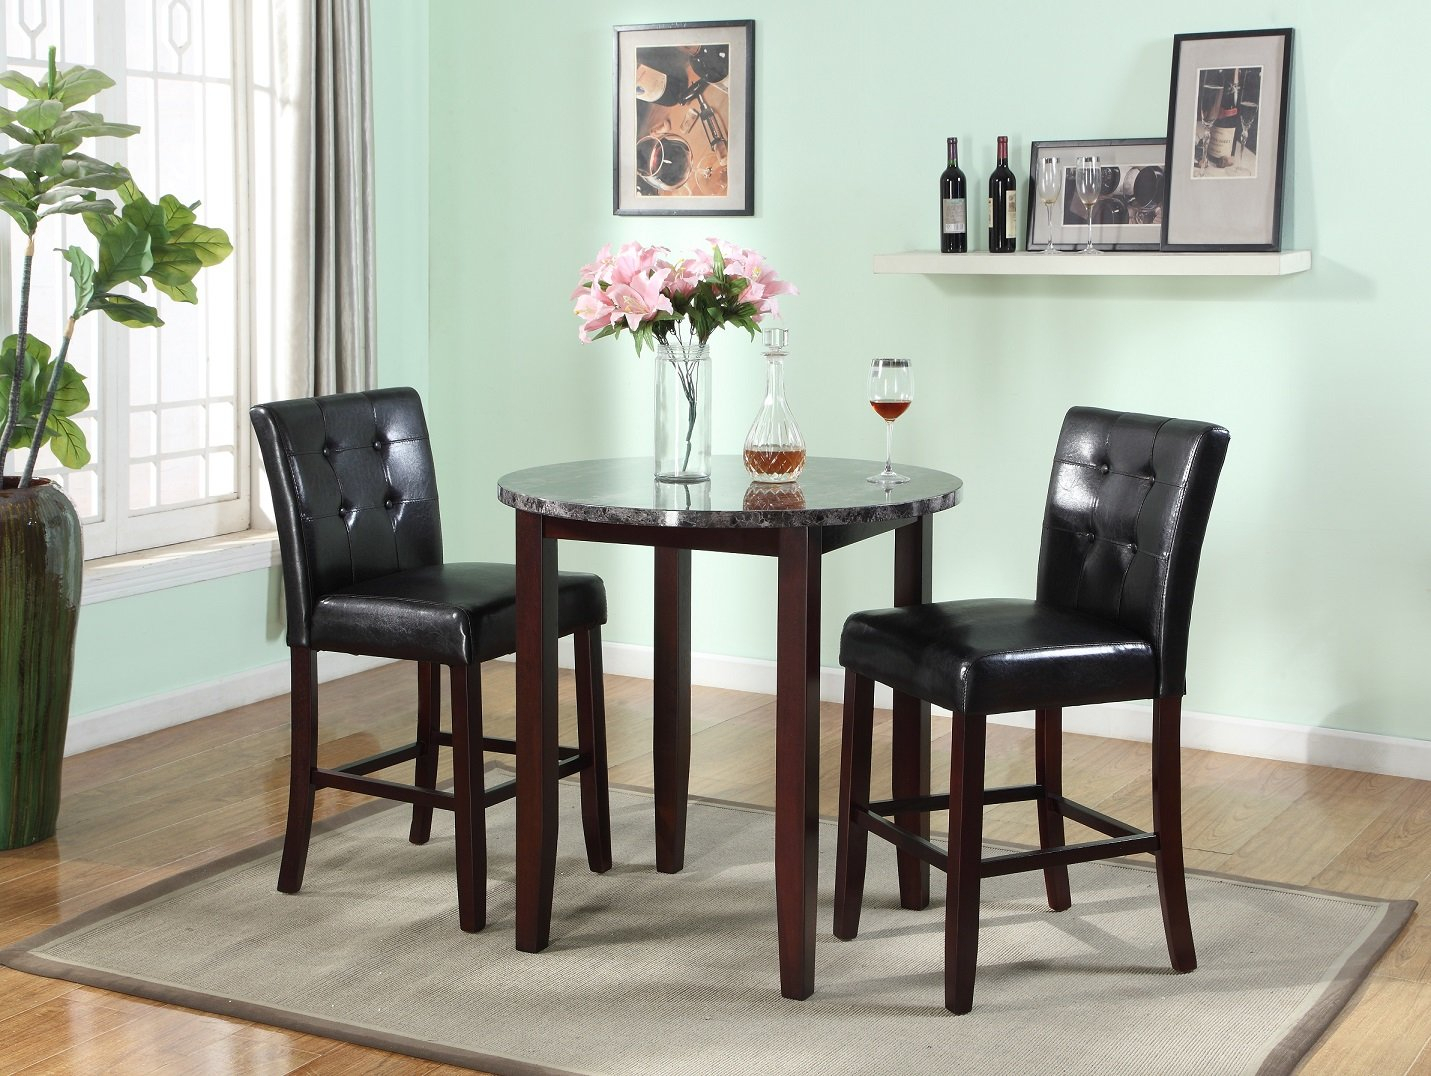 Janmarie 3 Piece Counter Height Dining Set Throughout Best And Newest Mizpah 3 Piece Counter Height Dining Sets (Image 12 of 20)